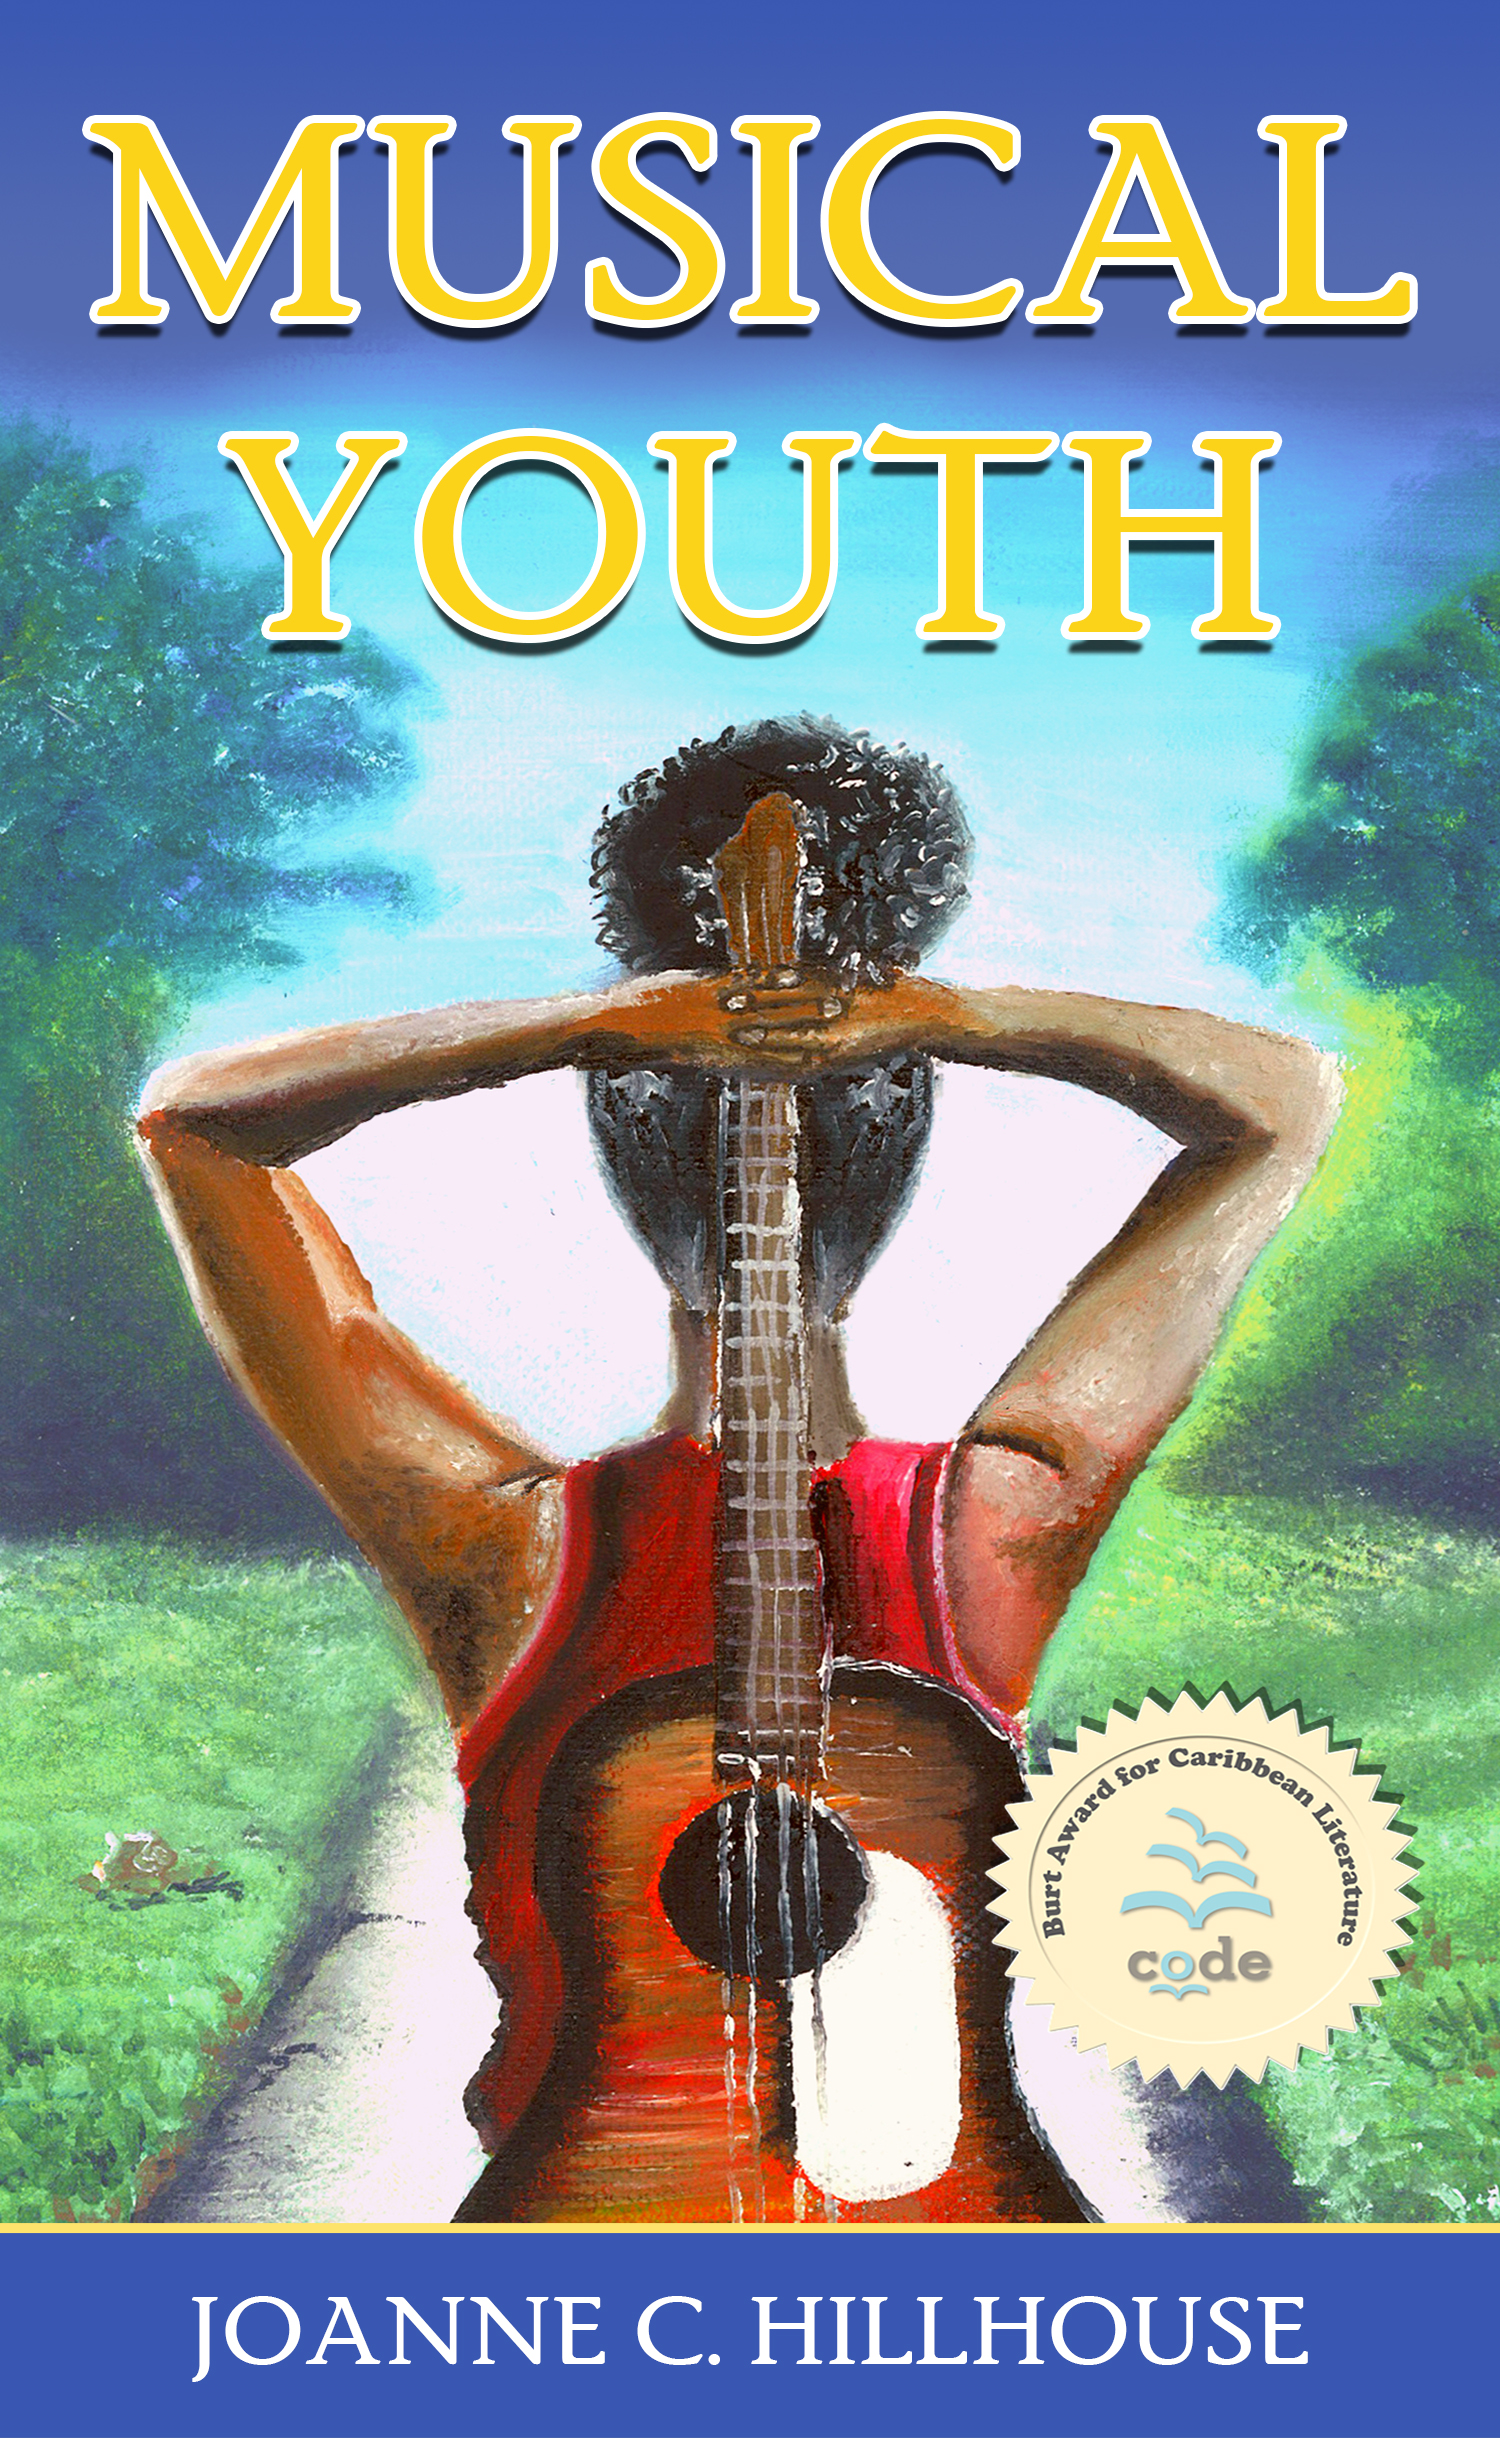 MUSICAL_YOUTH_Cover_FRONT_Final.jpg